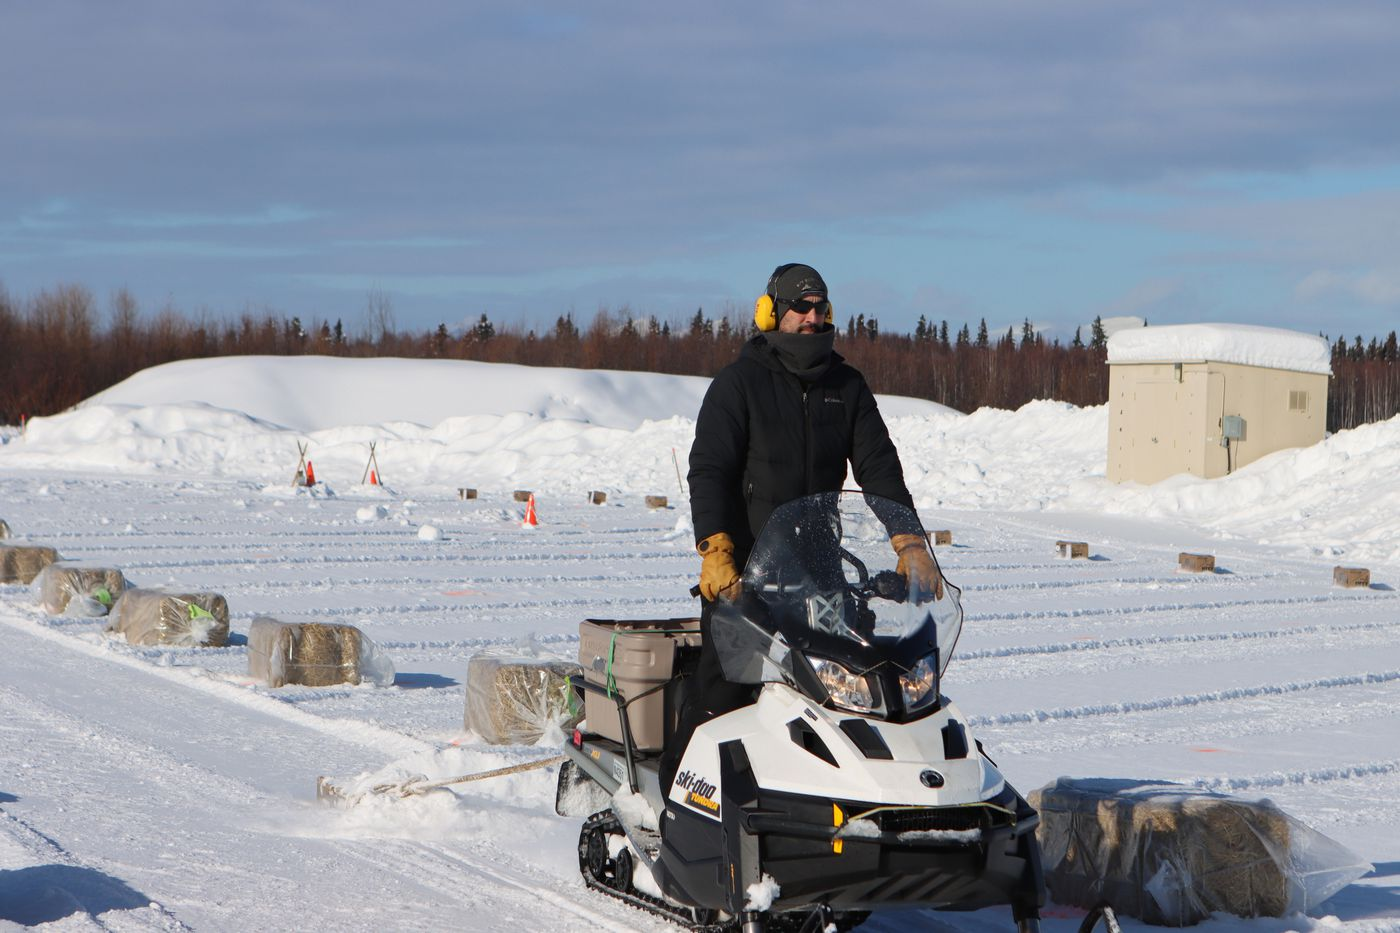 A snowmachiner drags a pallet to smooth out snow lanes in the new dog lot which has been set up in McGrath to accommodate Covid precautions. It is a tidy and well laid out staging area, complete with parking lanes for the Iditarod teams. (Zachariah Hughes/for ADN)